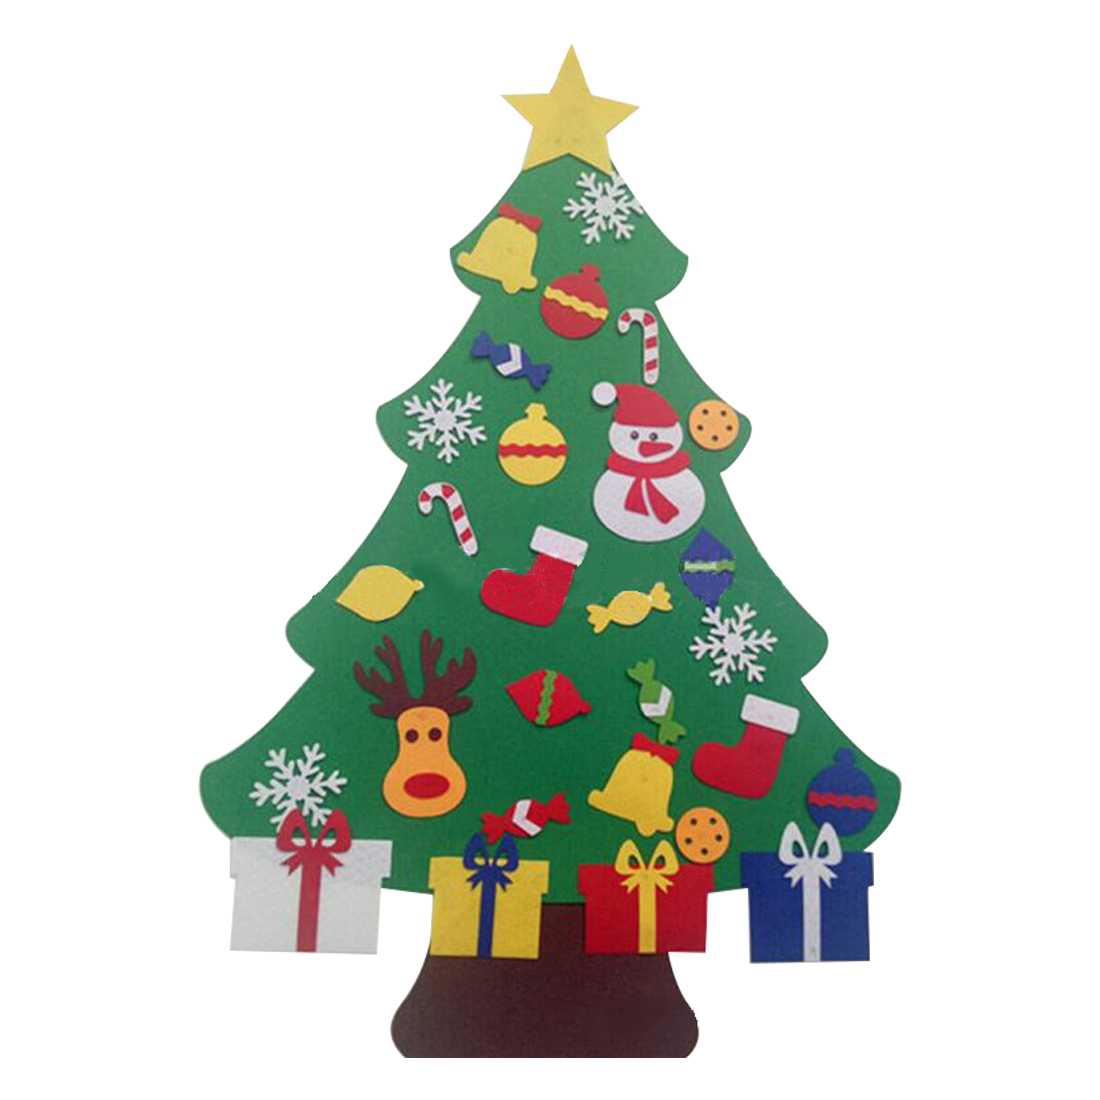 useful kids diy felt christmas tree with ornaments children christmas gifts for 2018 new year door wall hanging xmas decoration - Wall Hanging Christmas Tree